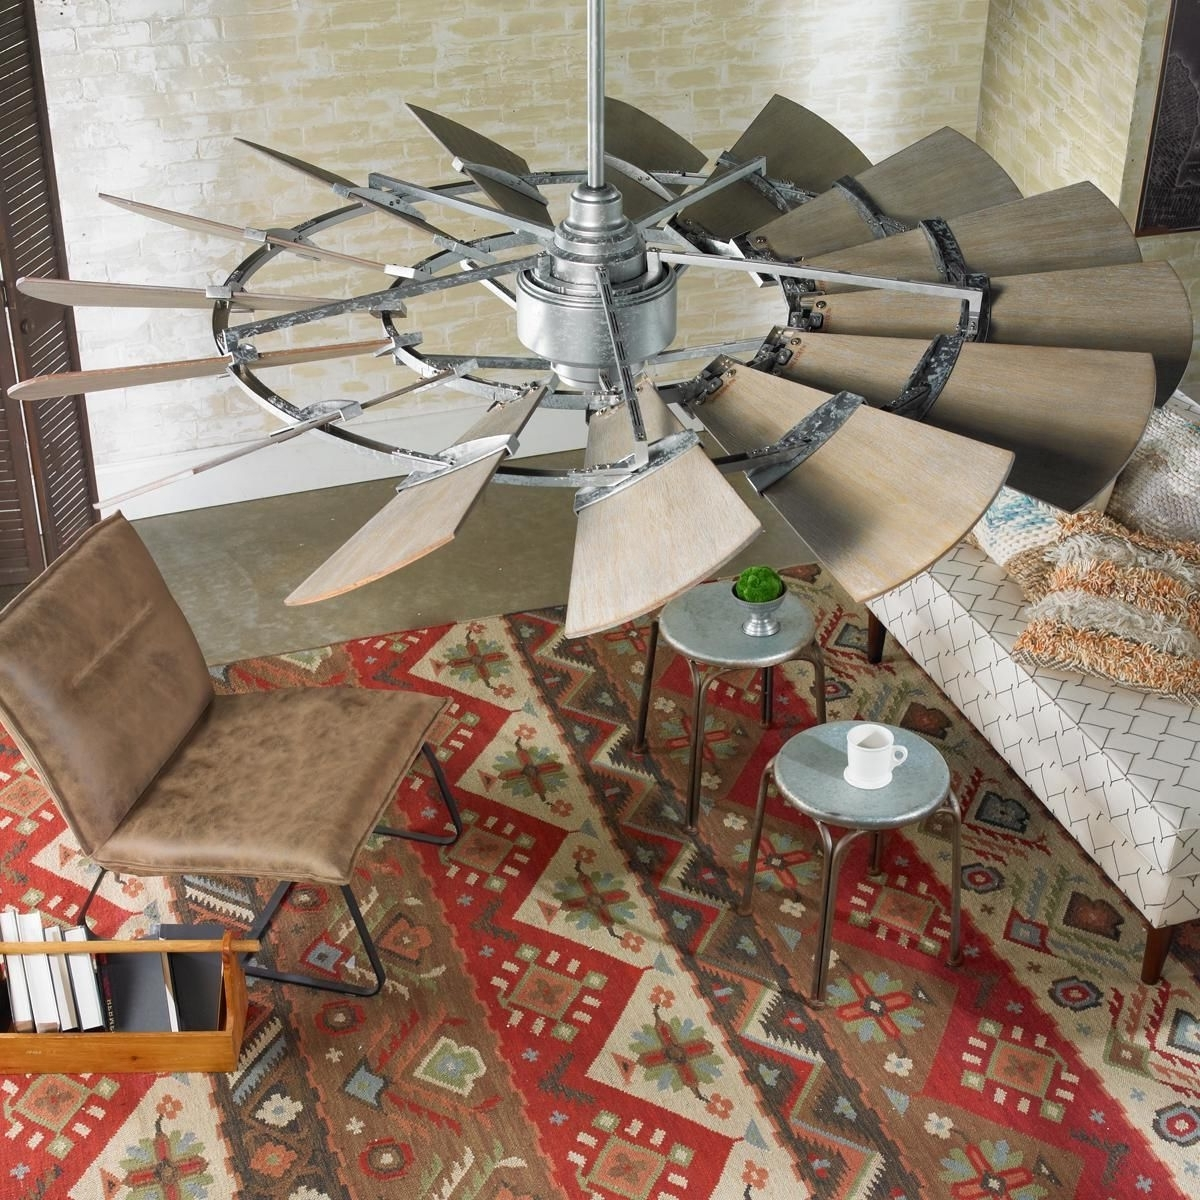 "Most Current Outdoor Windmill Ceiling Fans With Light For 60"" Outdoor Rustic Windmill Ceiling Fan (View 10 of 20)"